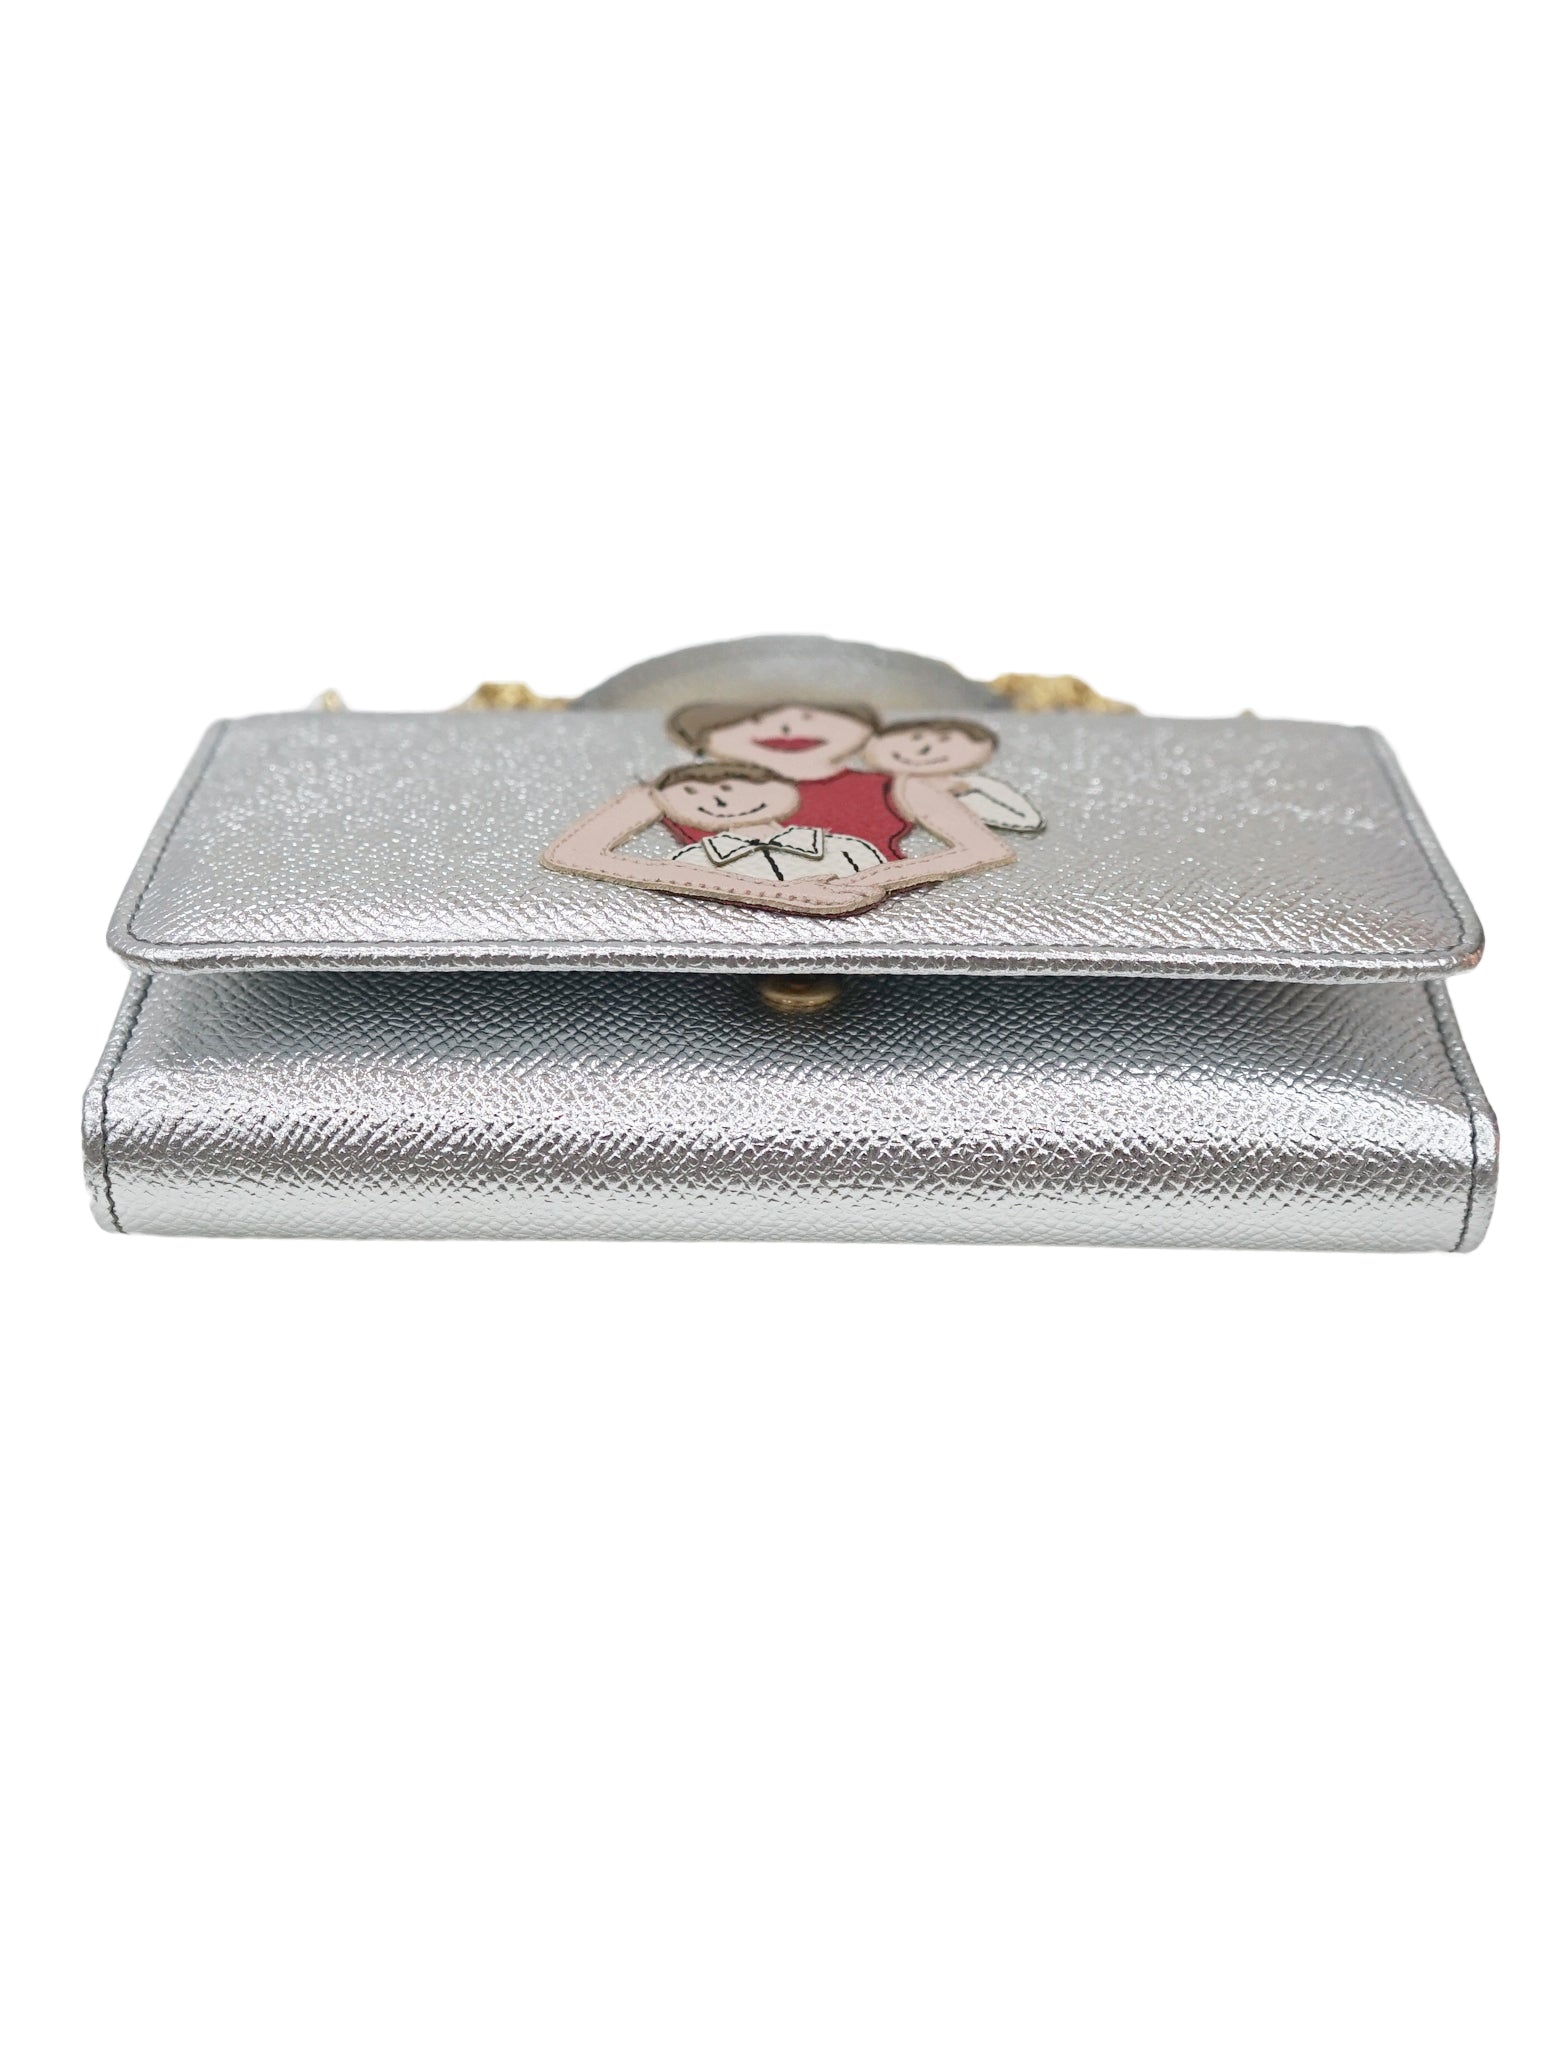 SILVER VON WALLET CROSSBODY BAG